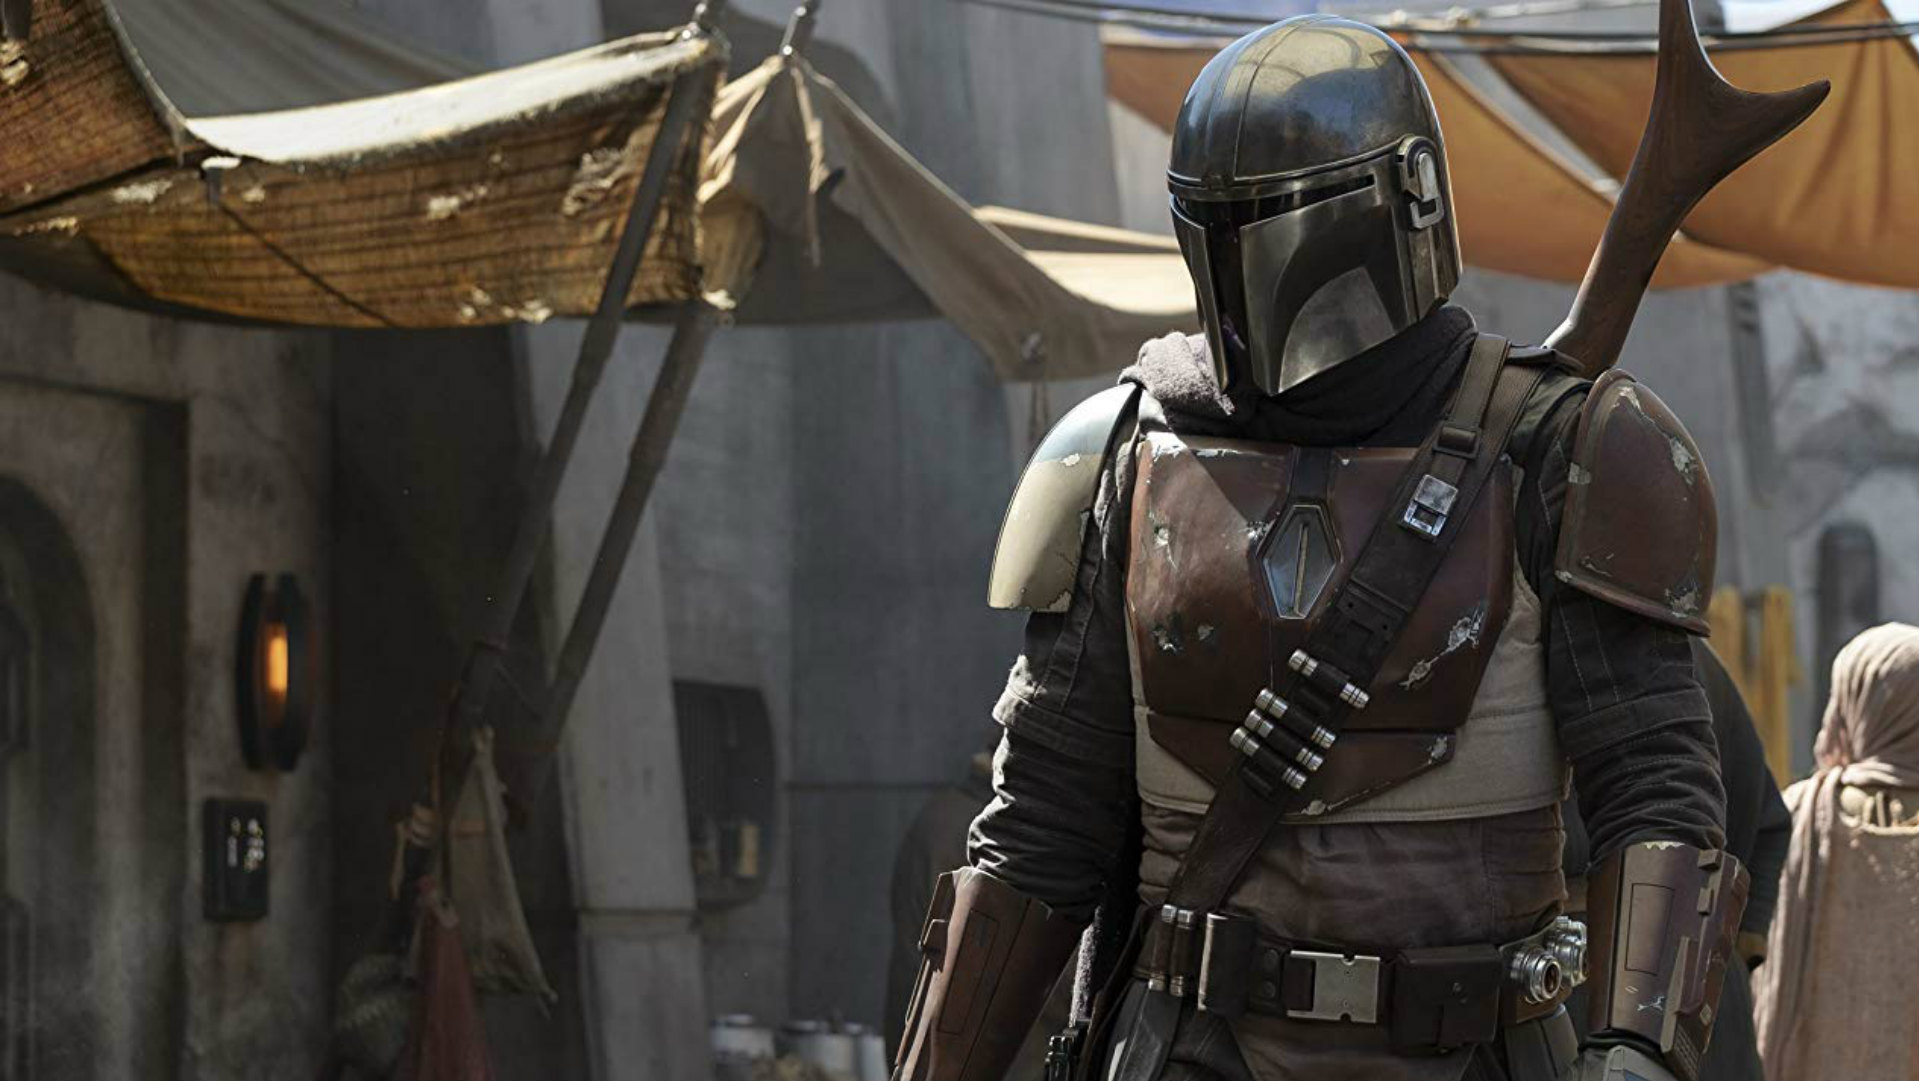 The Mandalorian Trailer: Once Upon a Time in a Galaxy Far, Far Away